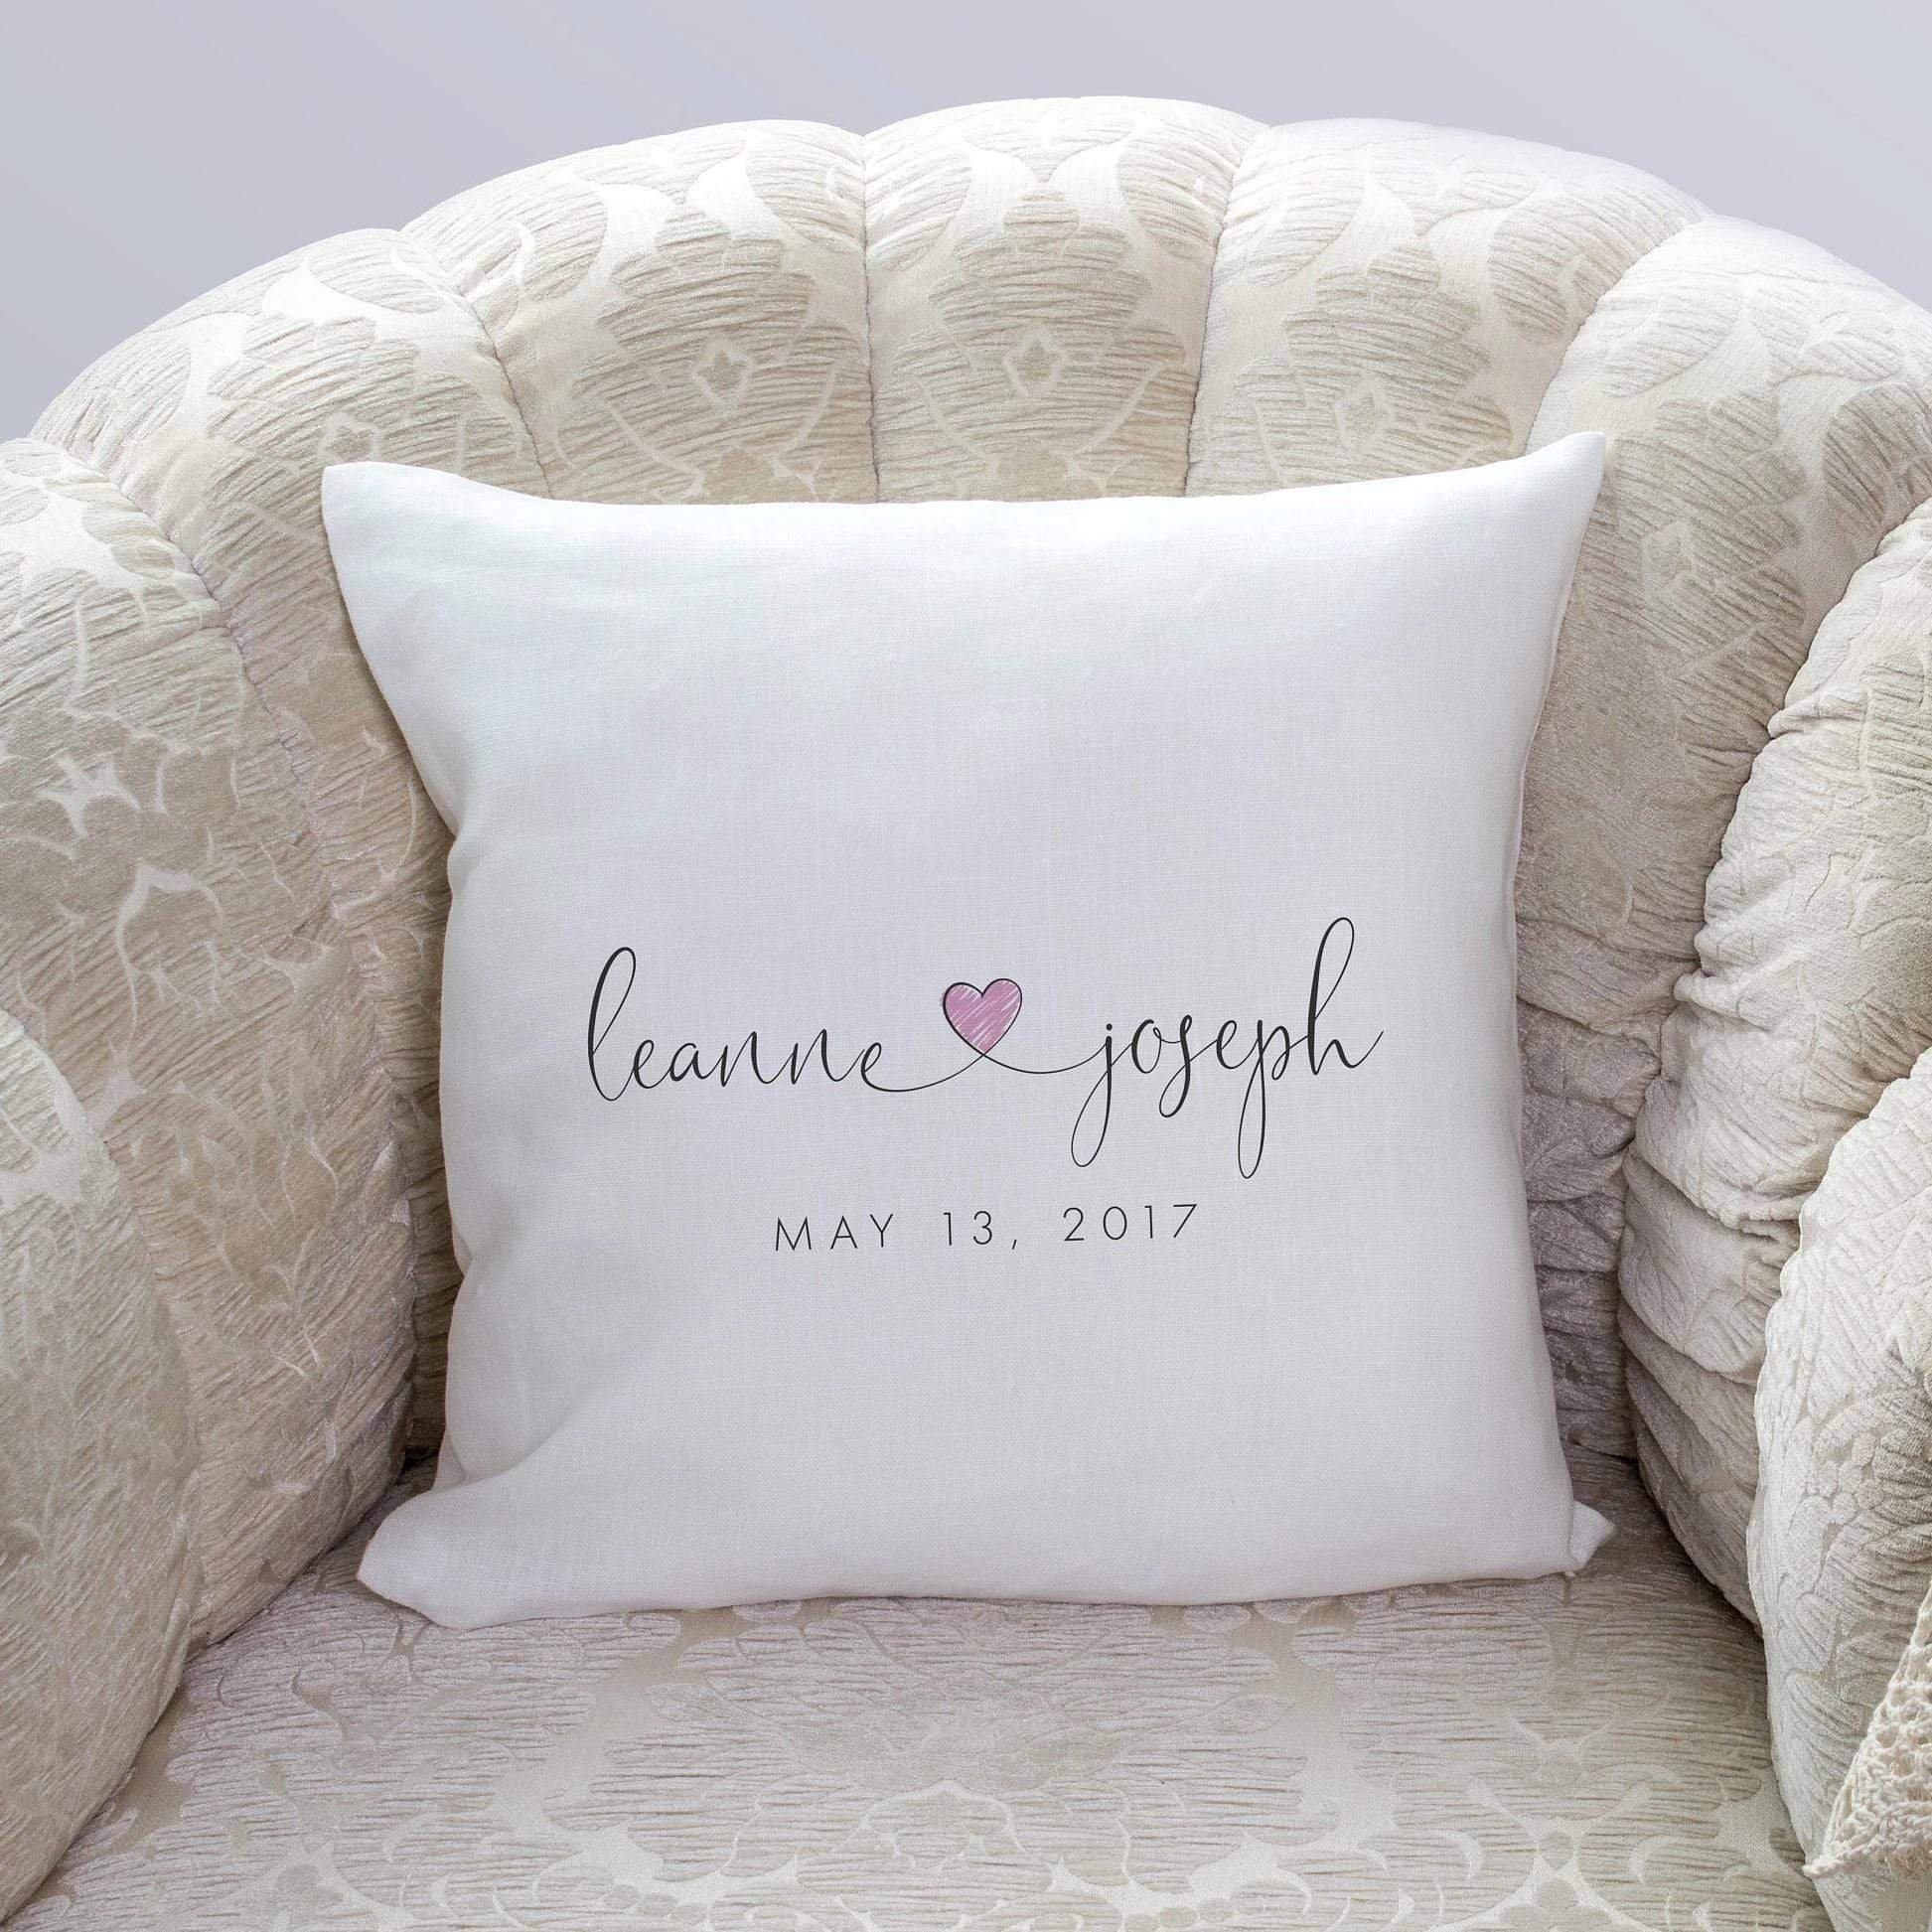 Leanne & Co. Pillow Custom Anniversary Pillow